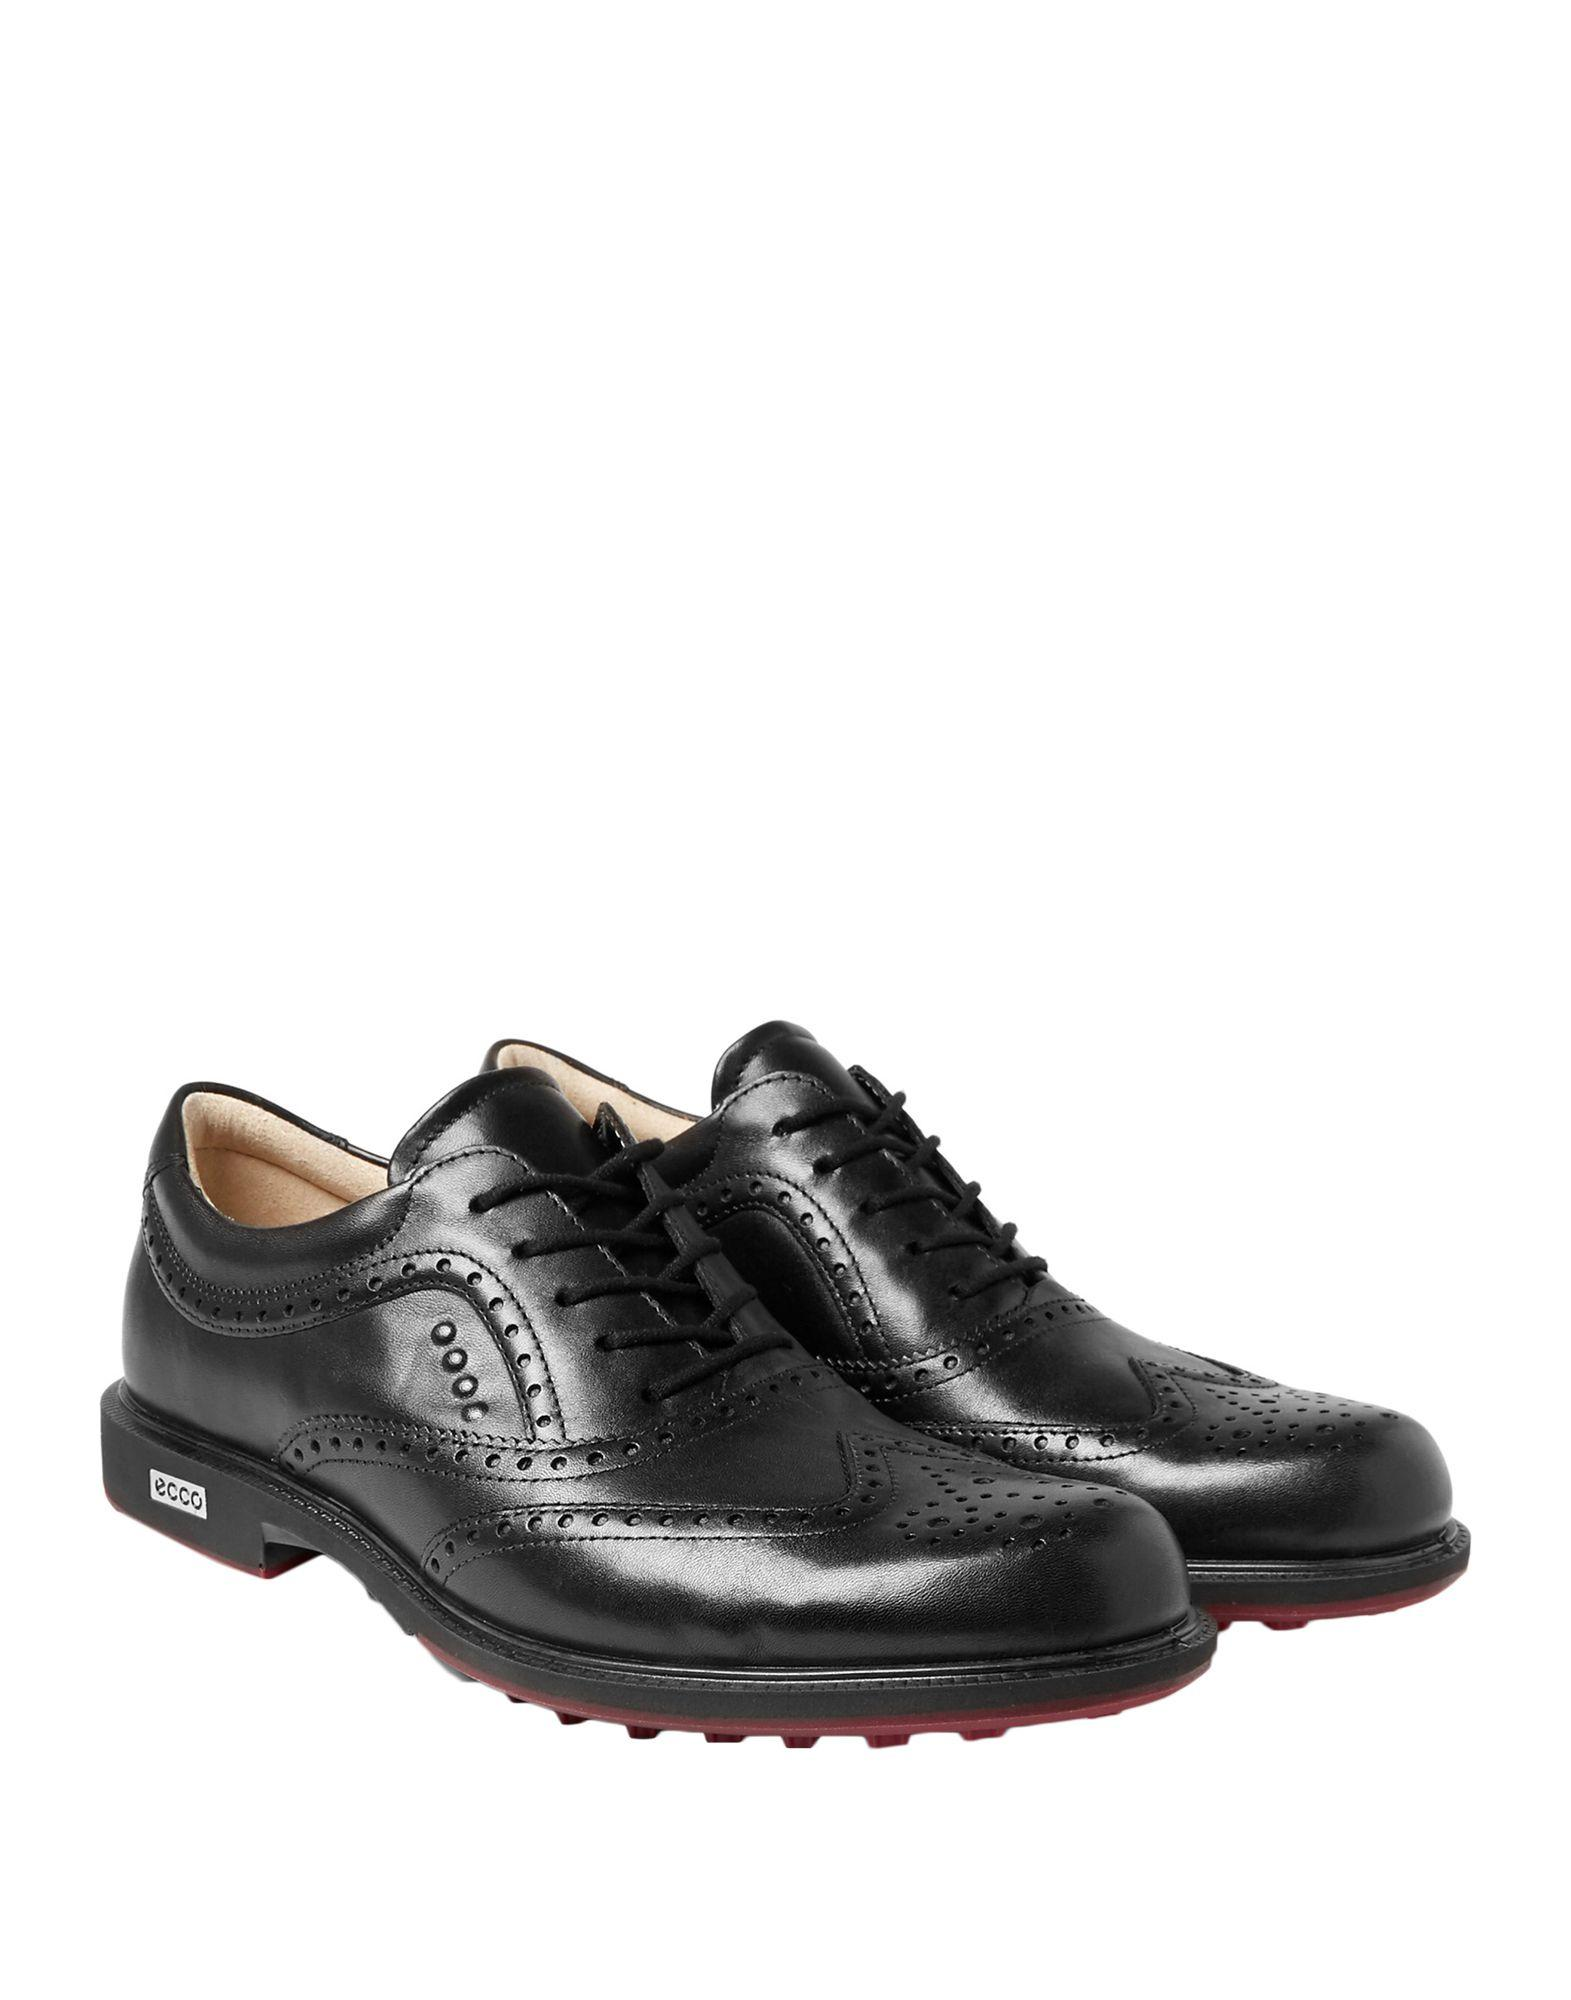 Ecco Leather Lace-up Shoe in Black for